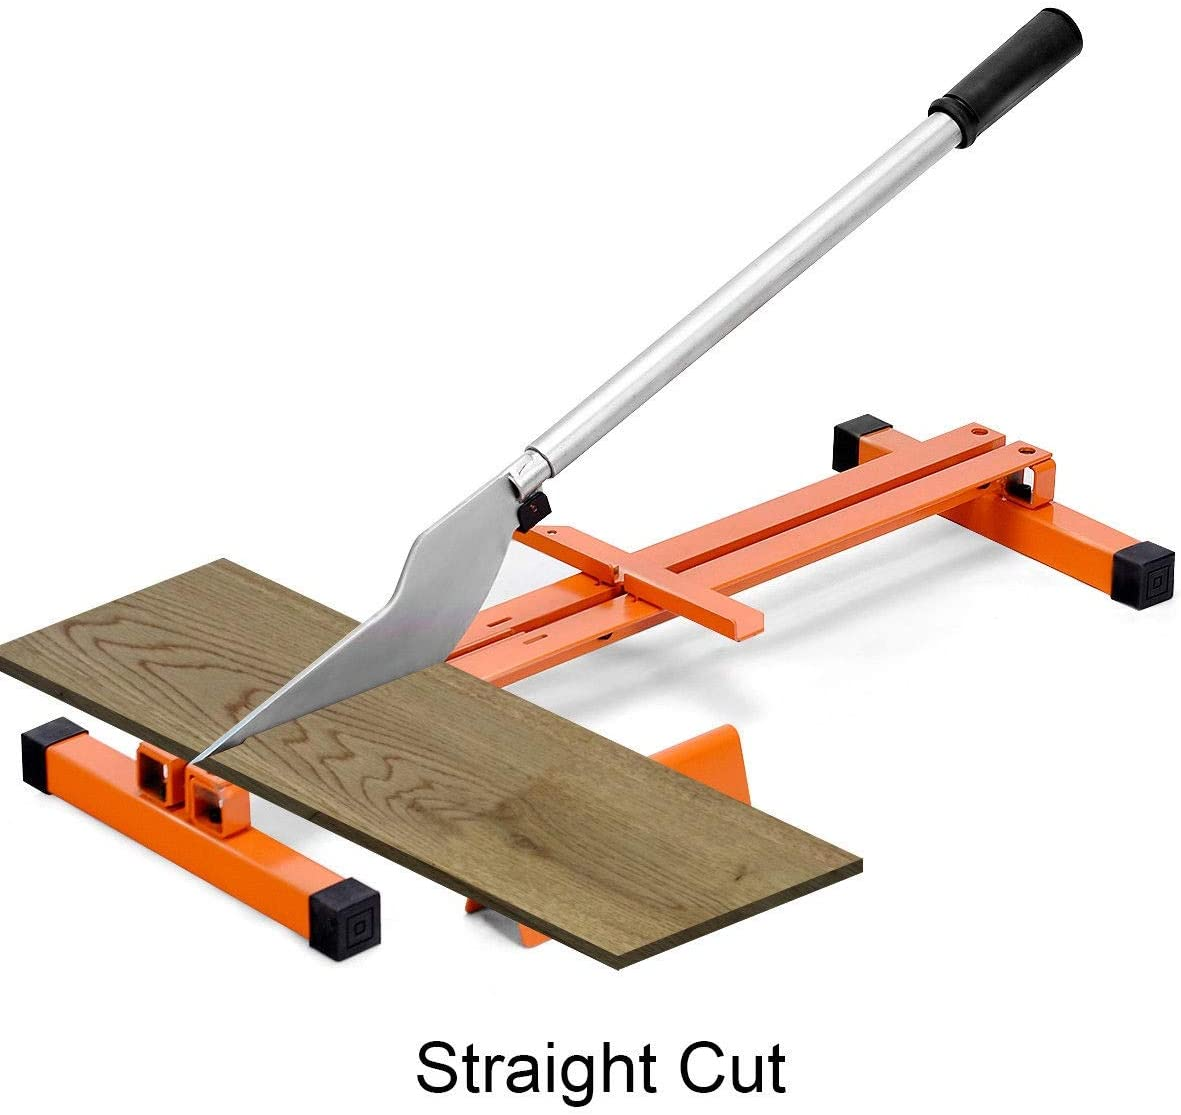 Contractor Flooring Hand Tool V-Support Steel Mandycng Magic Polywood Flooring Handheld Cutting Home DIY Tool Professional Heavy Duty Laminate Flooring Cutter